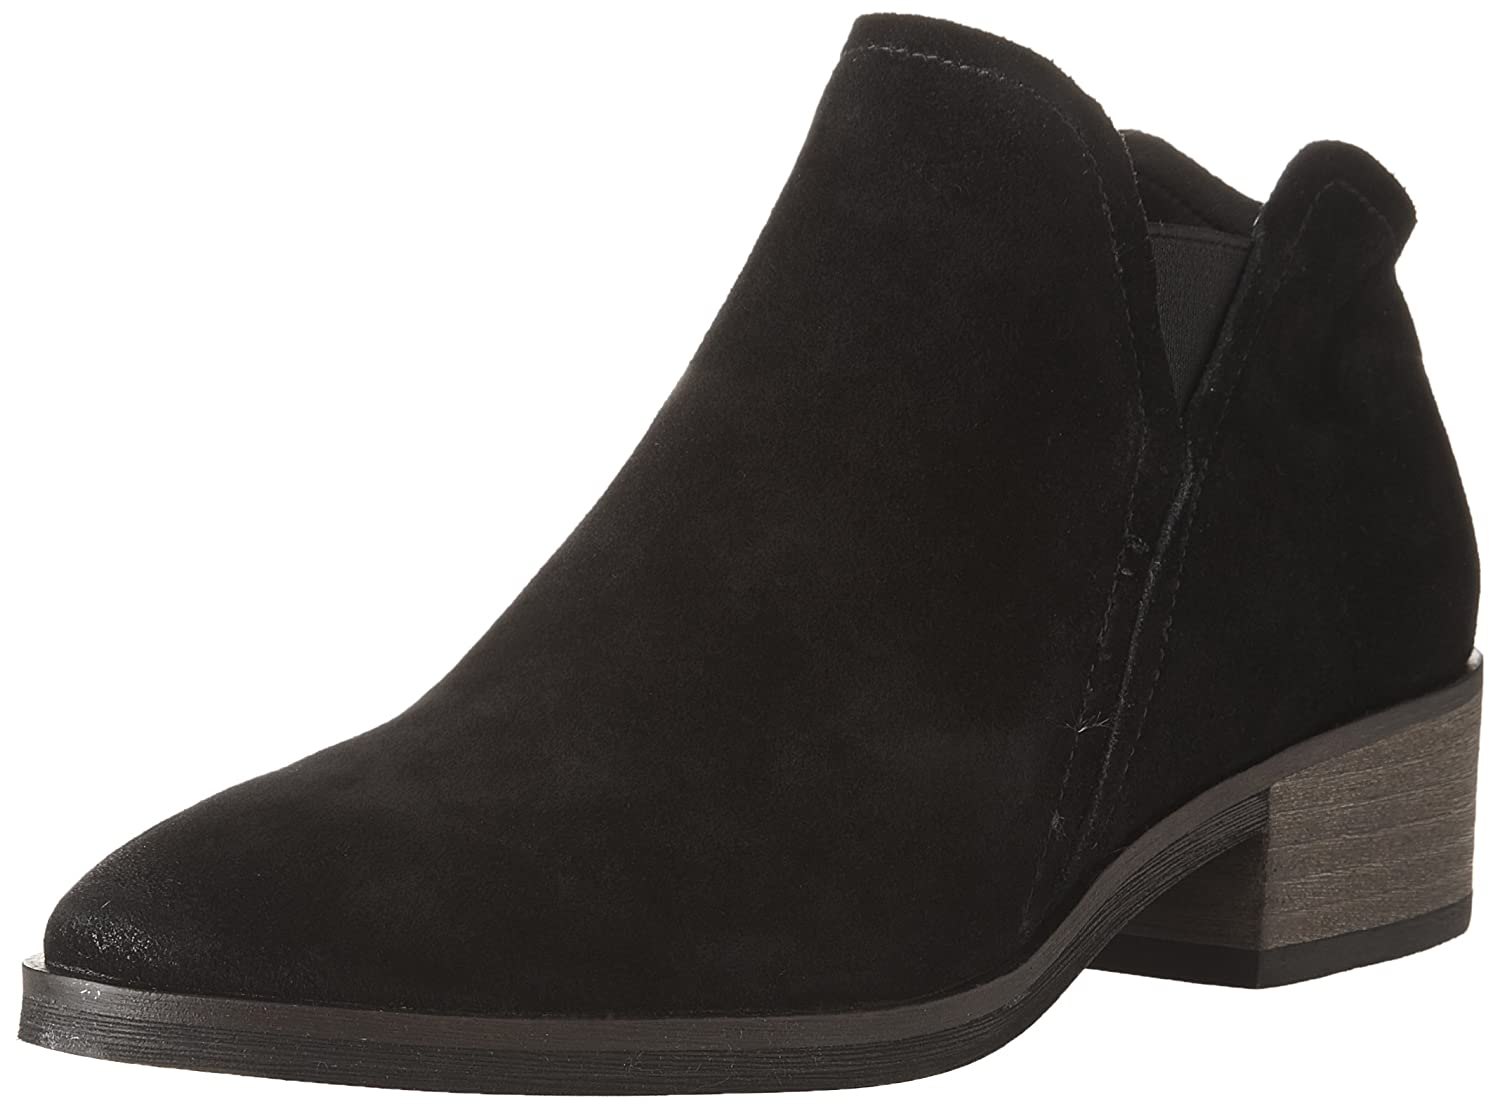 Dolce Vita Women's Tay Ankle Boot B06XKTS9NV 7 B(M) US|Onyx Suede